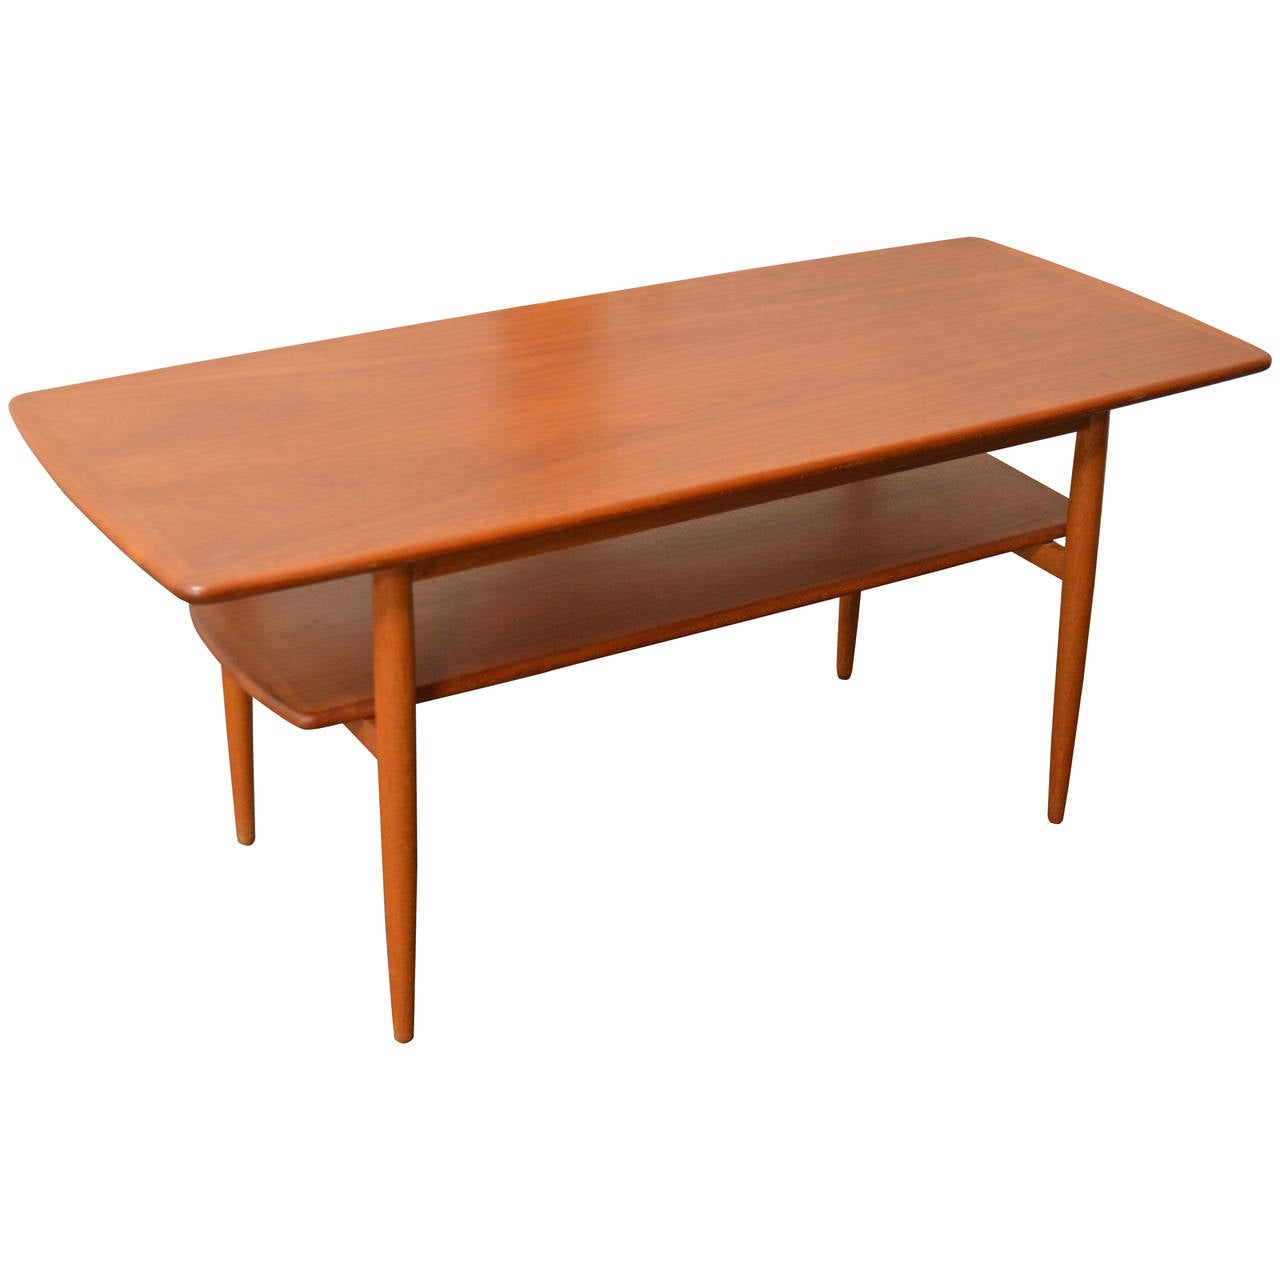 Mid century modern swedish teak coffee table with shelf for sale at 1stdibs Mid century coffee tables